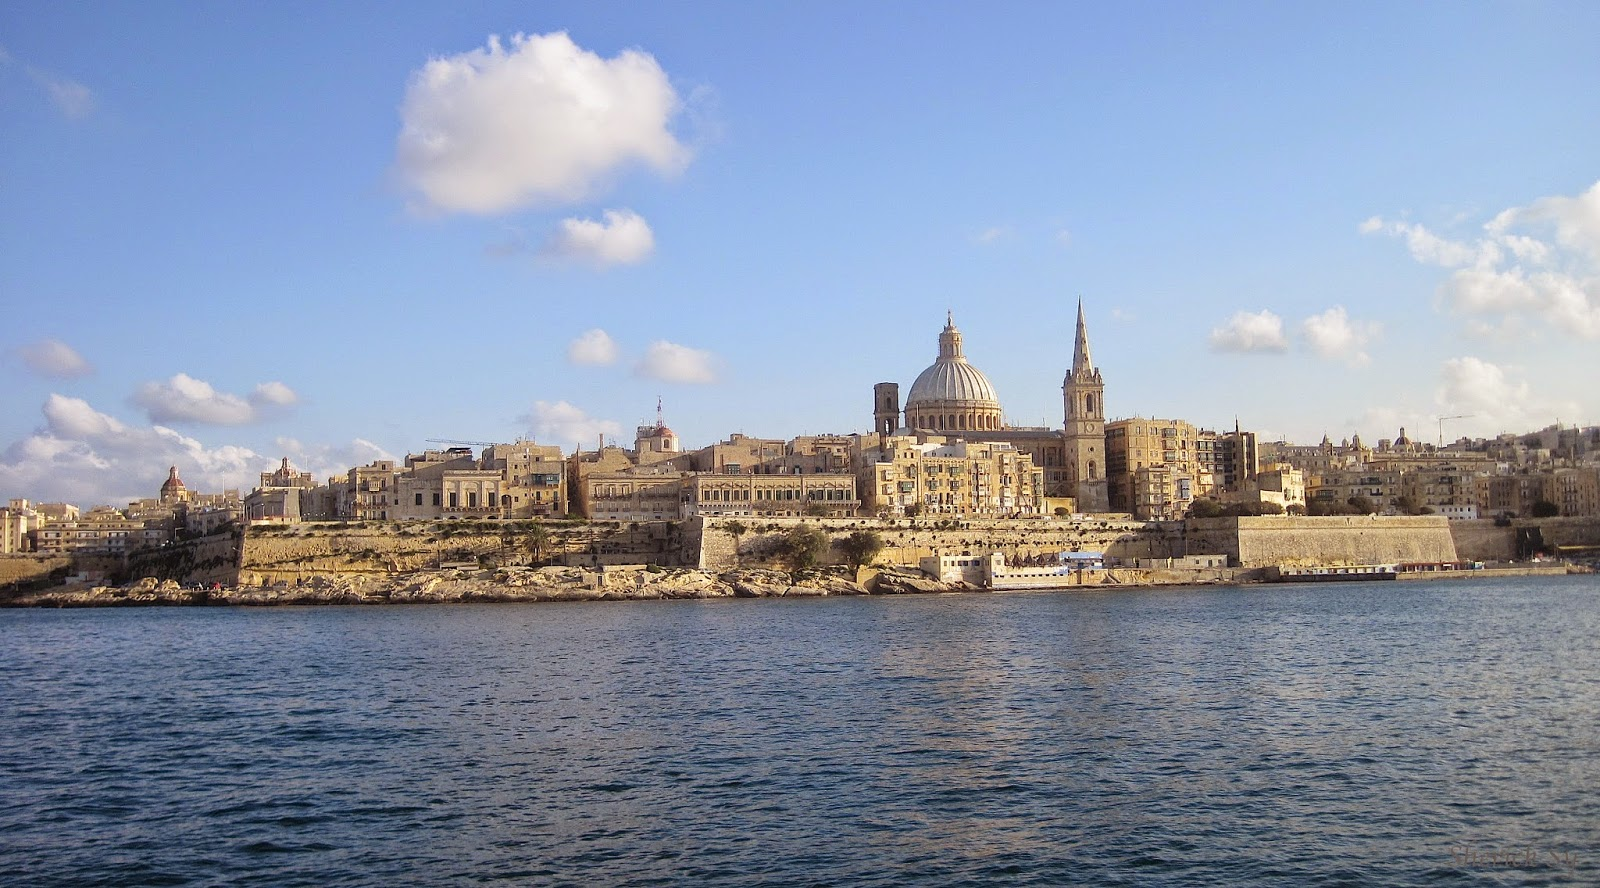 Cruising in Malta